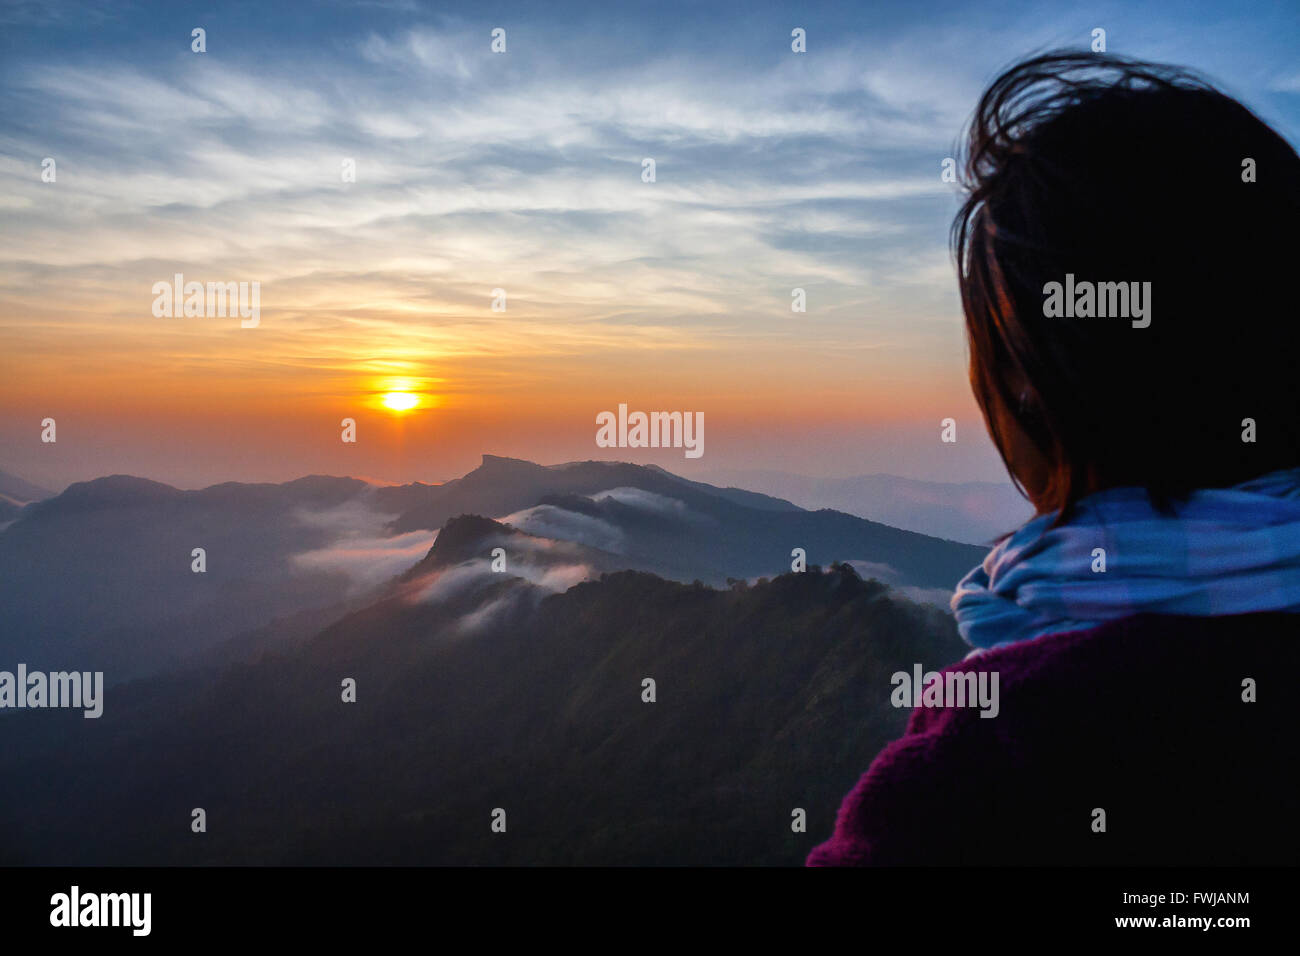 Rear View Of Person Against Mountains During Sunset - Stock Image